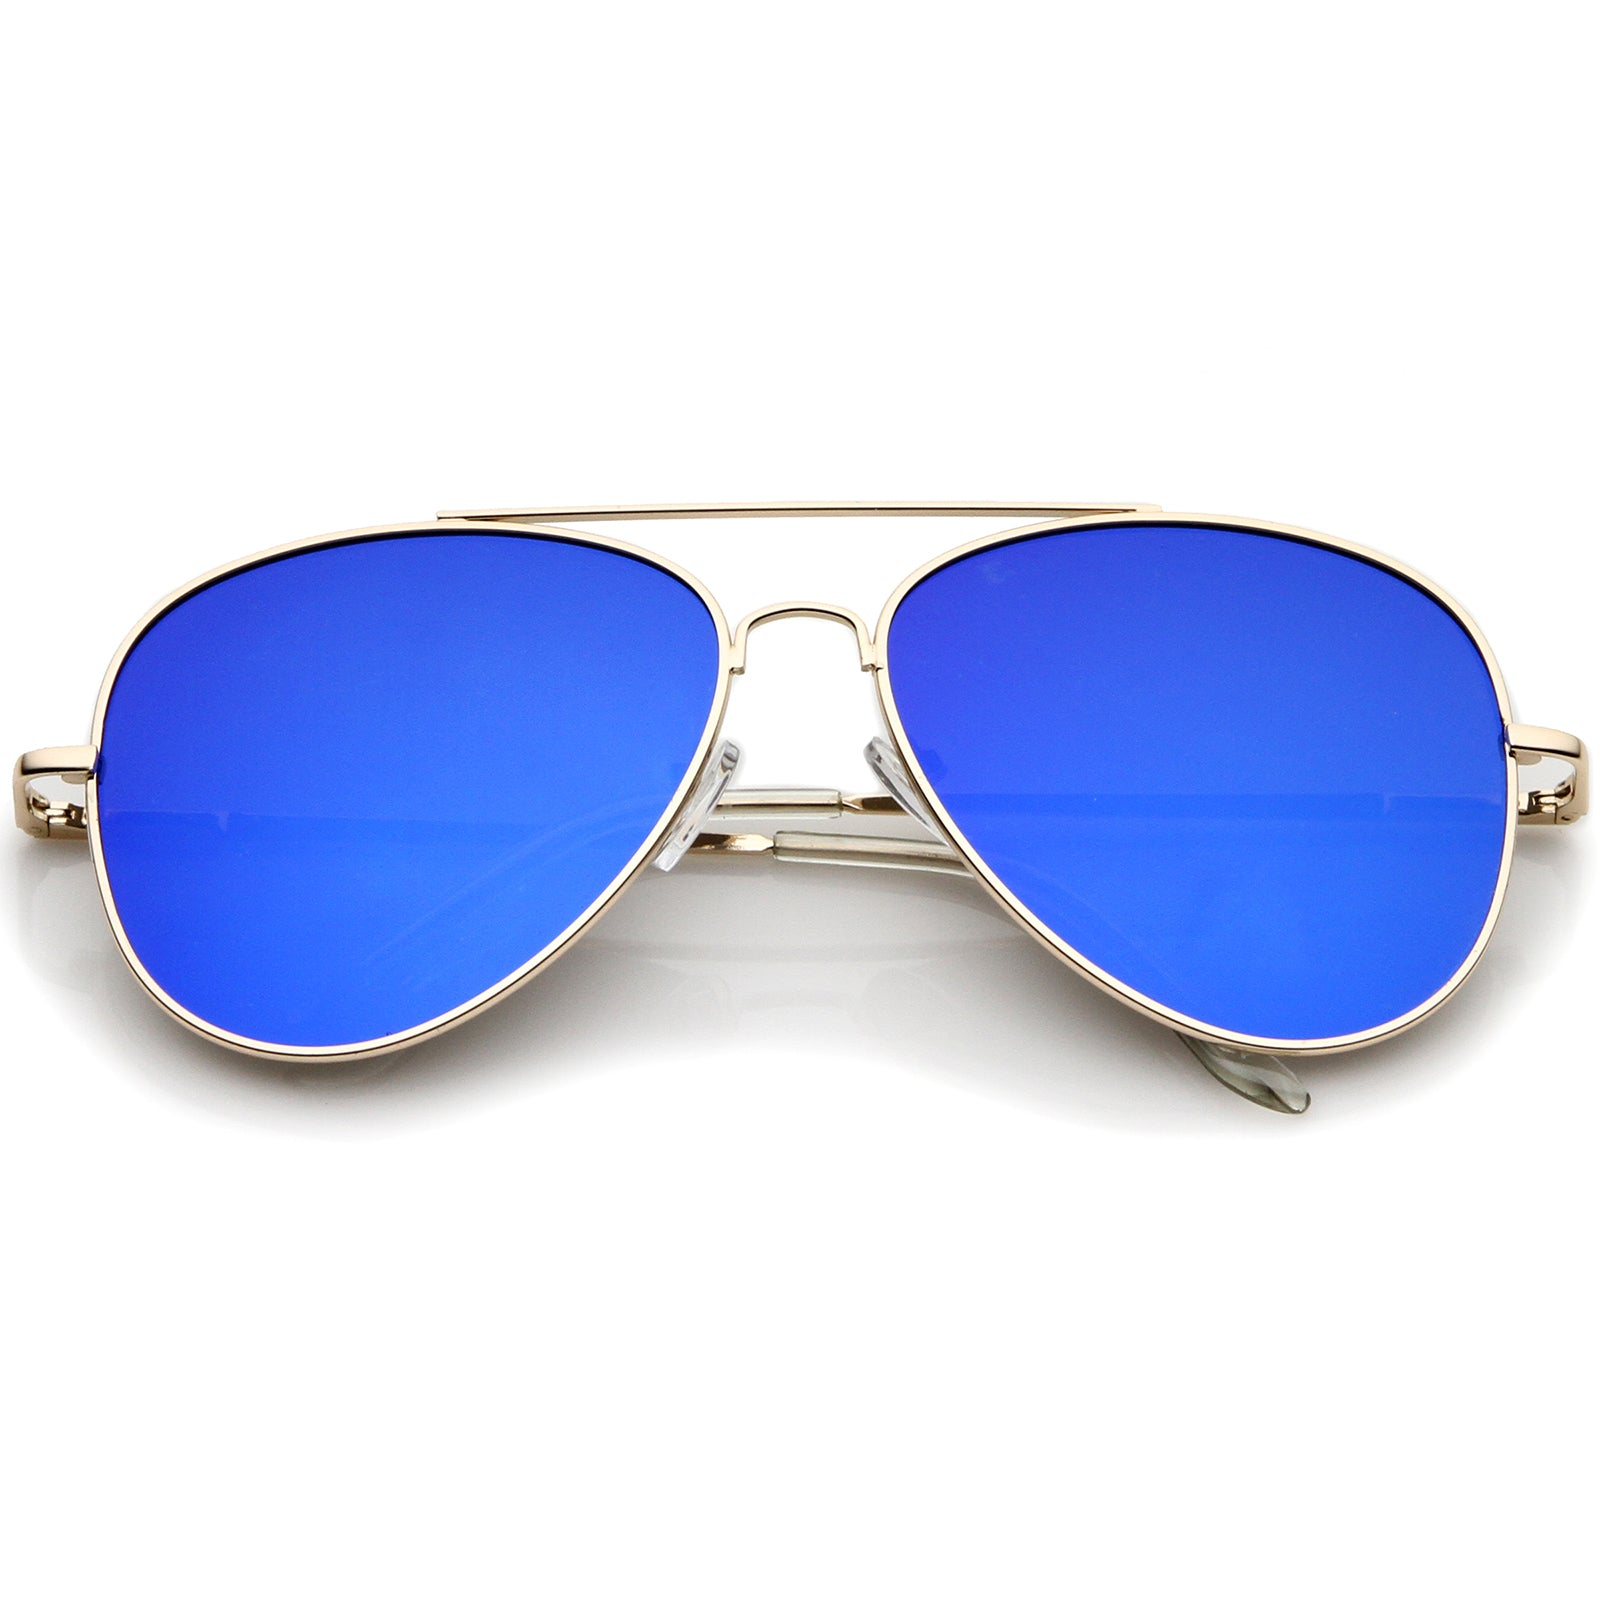 large aviator sunglasses  Large Metal Frame Colored Mirror Flat Lens Aviator Sunglasses 60mm ...